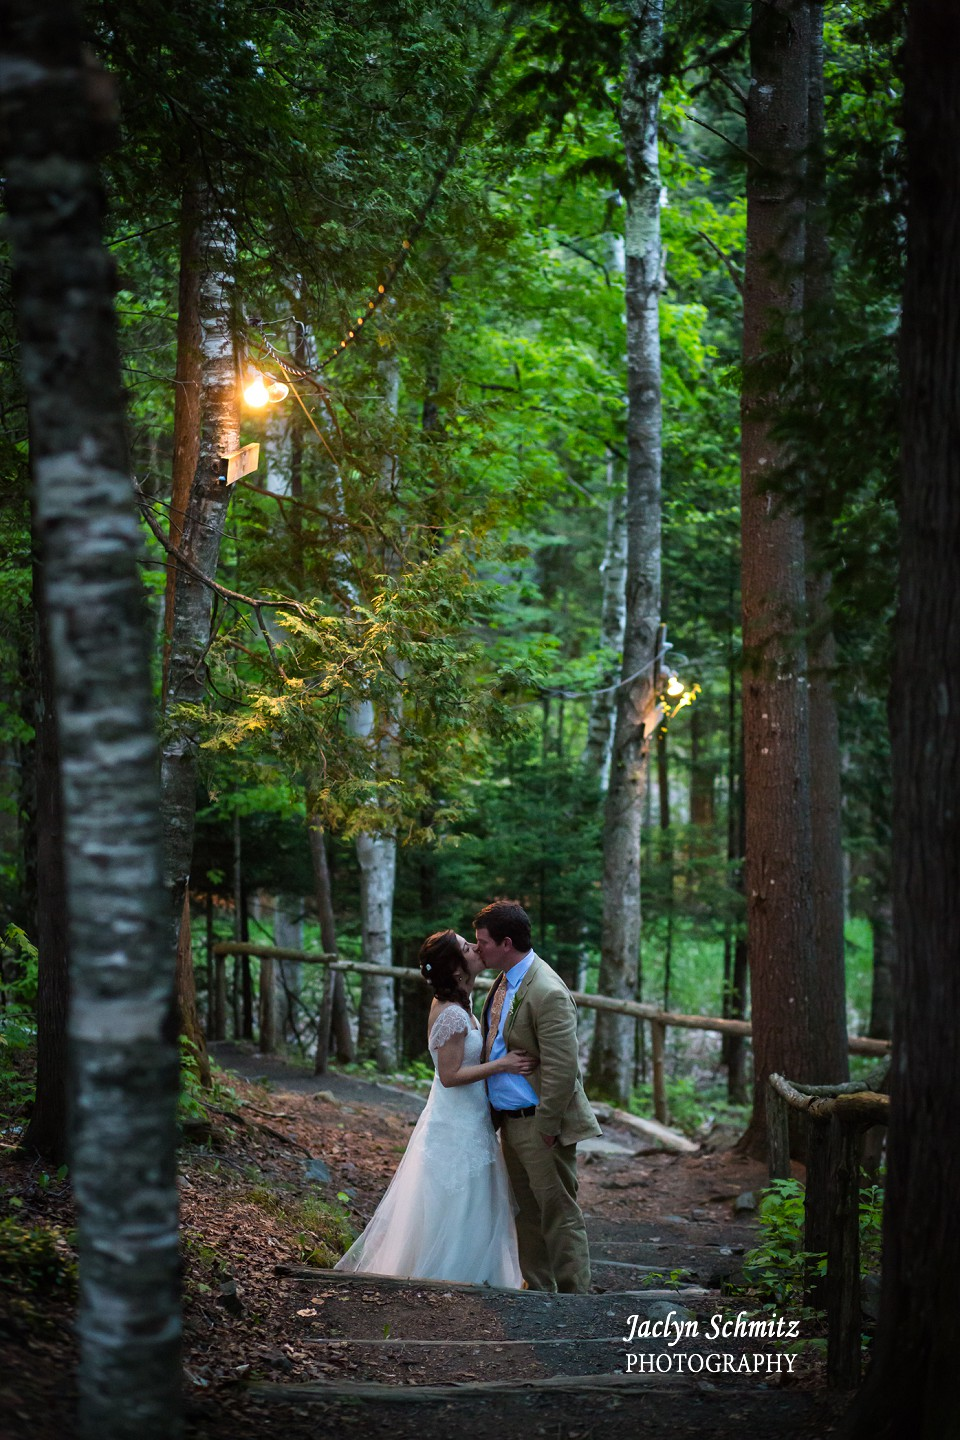 intimate wedding portrait in forest with glowing lights